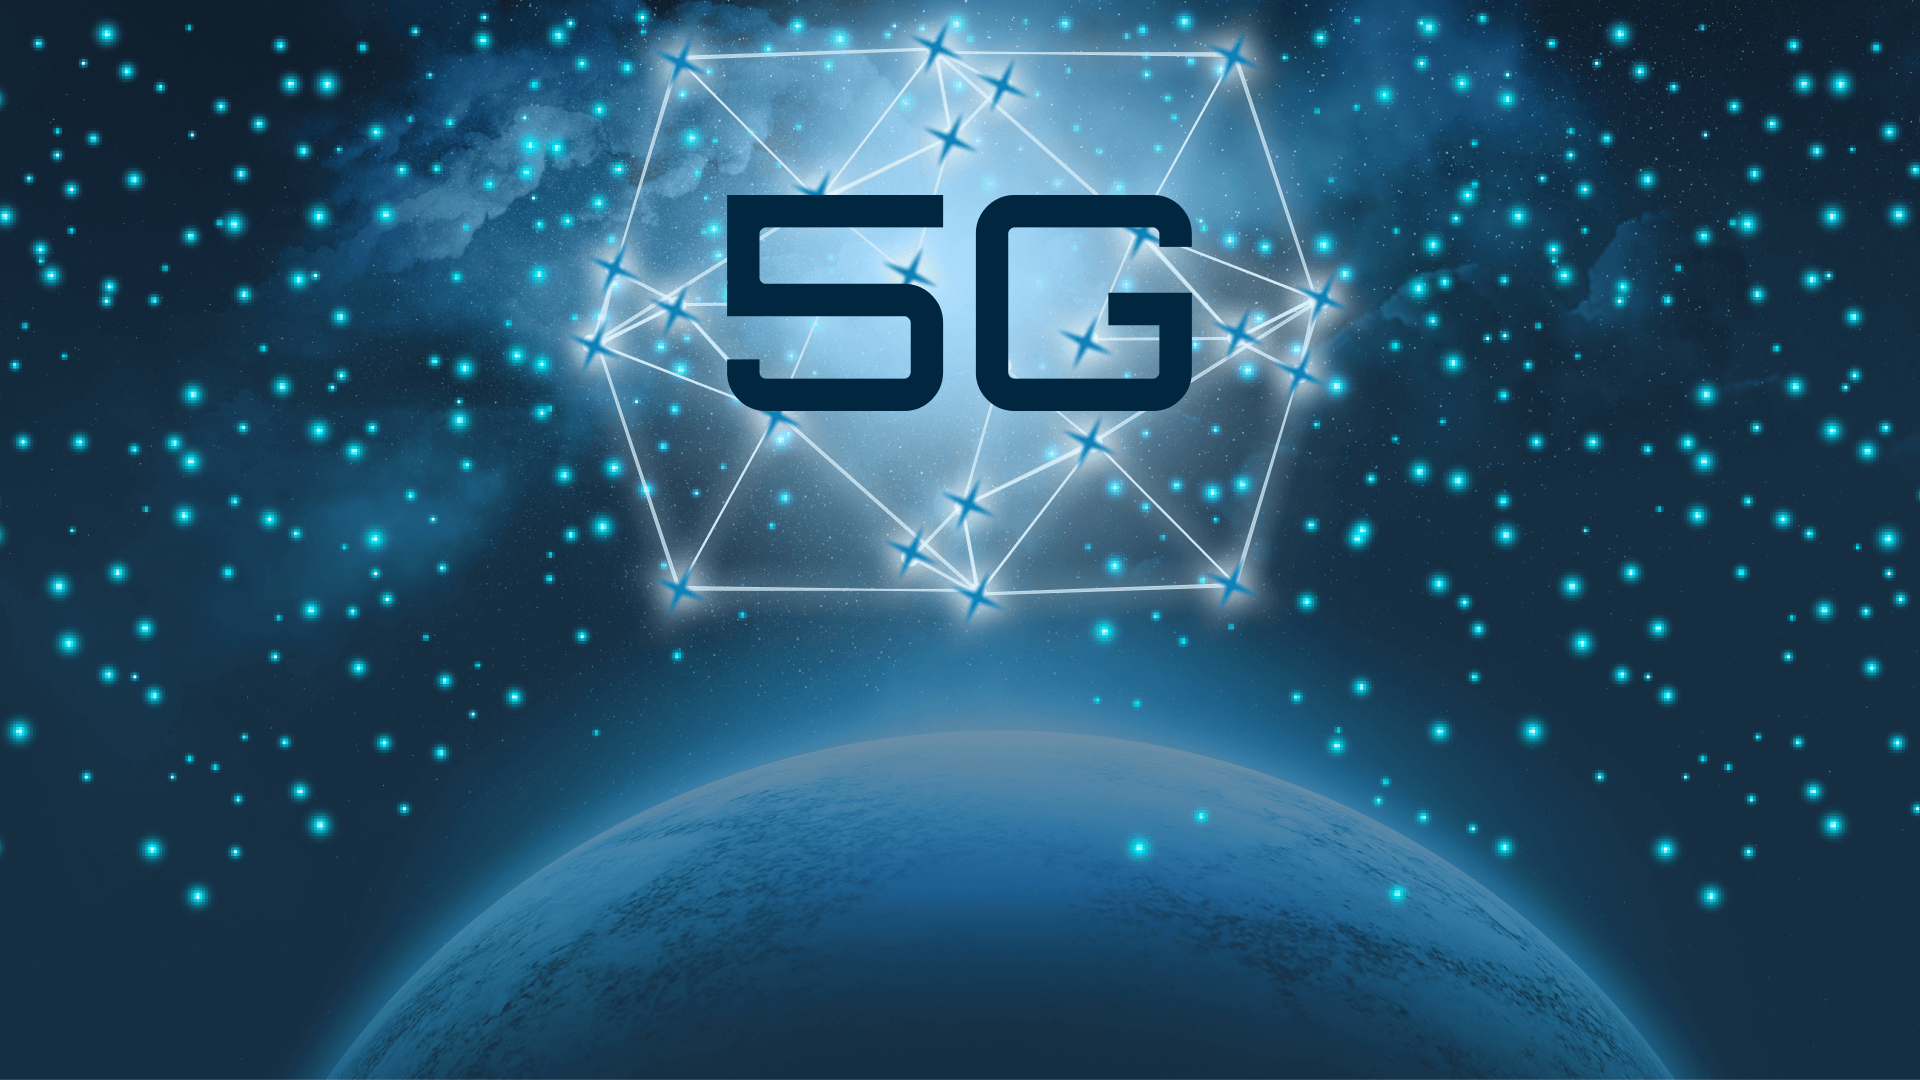 8 Benefits of Applying 5G Wireless Technology to Your Business